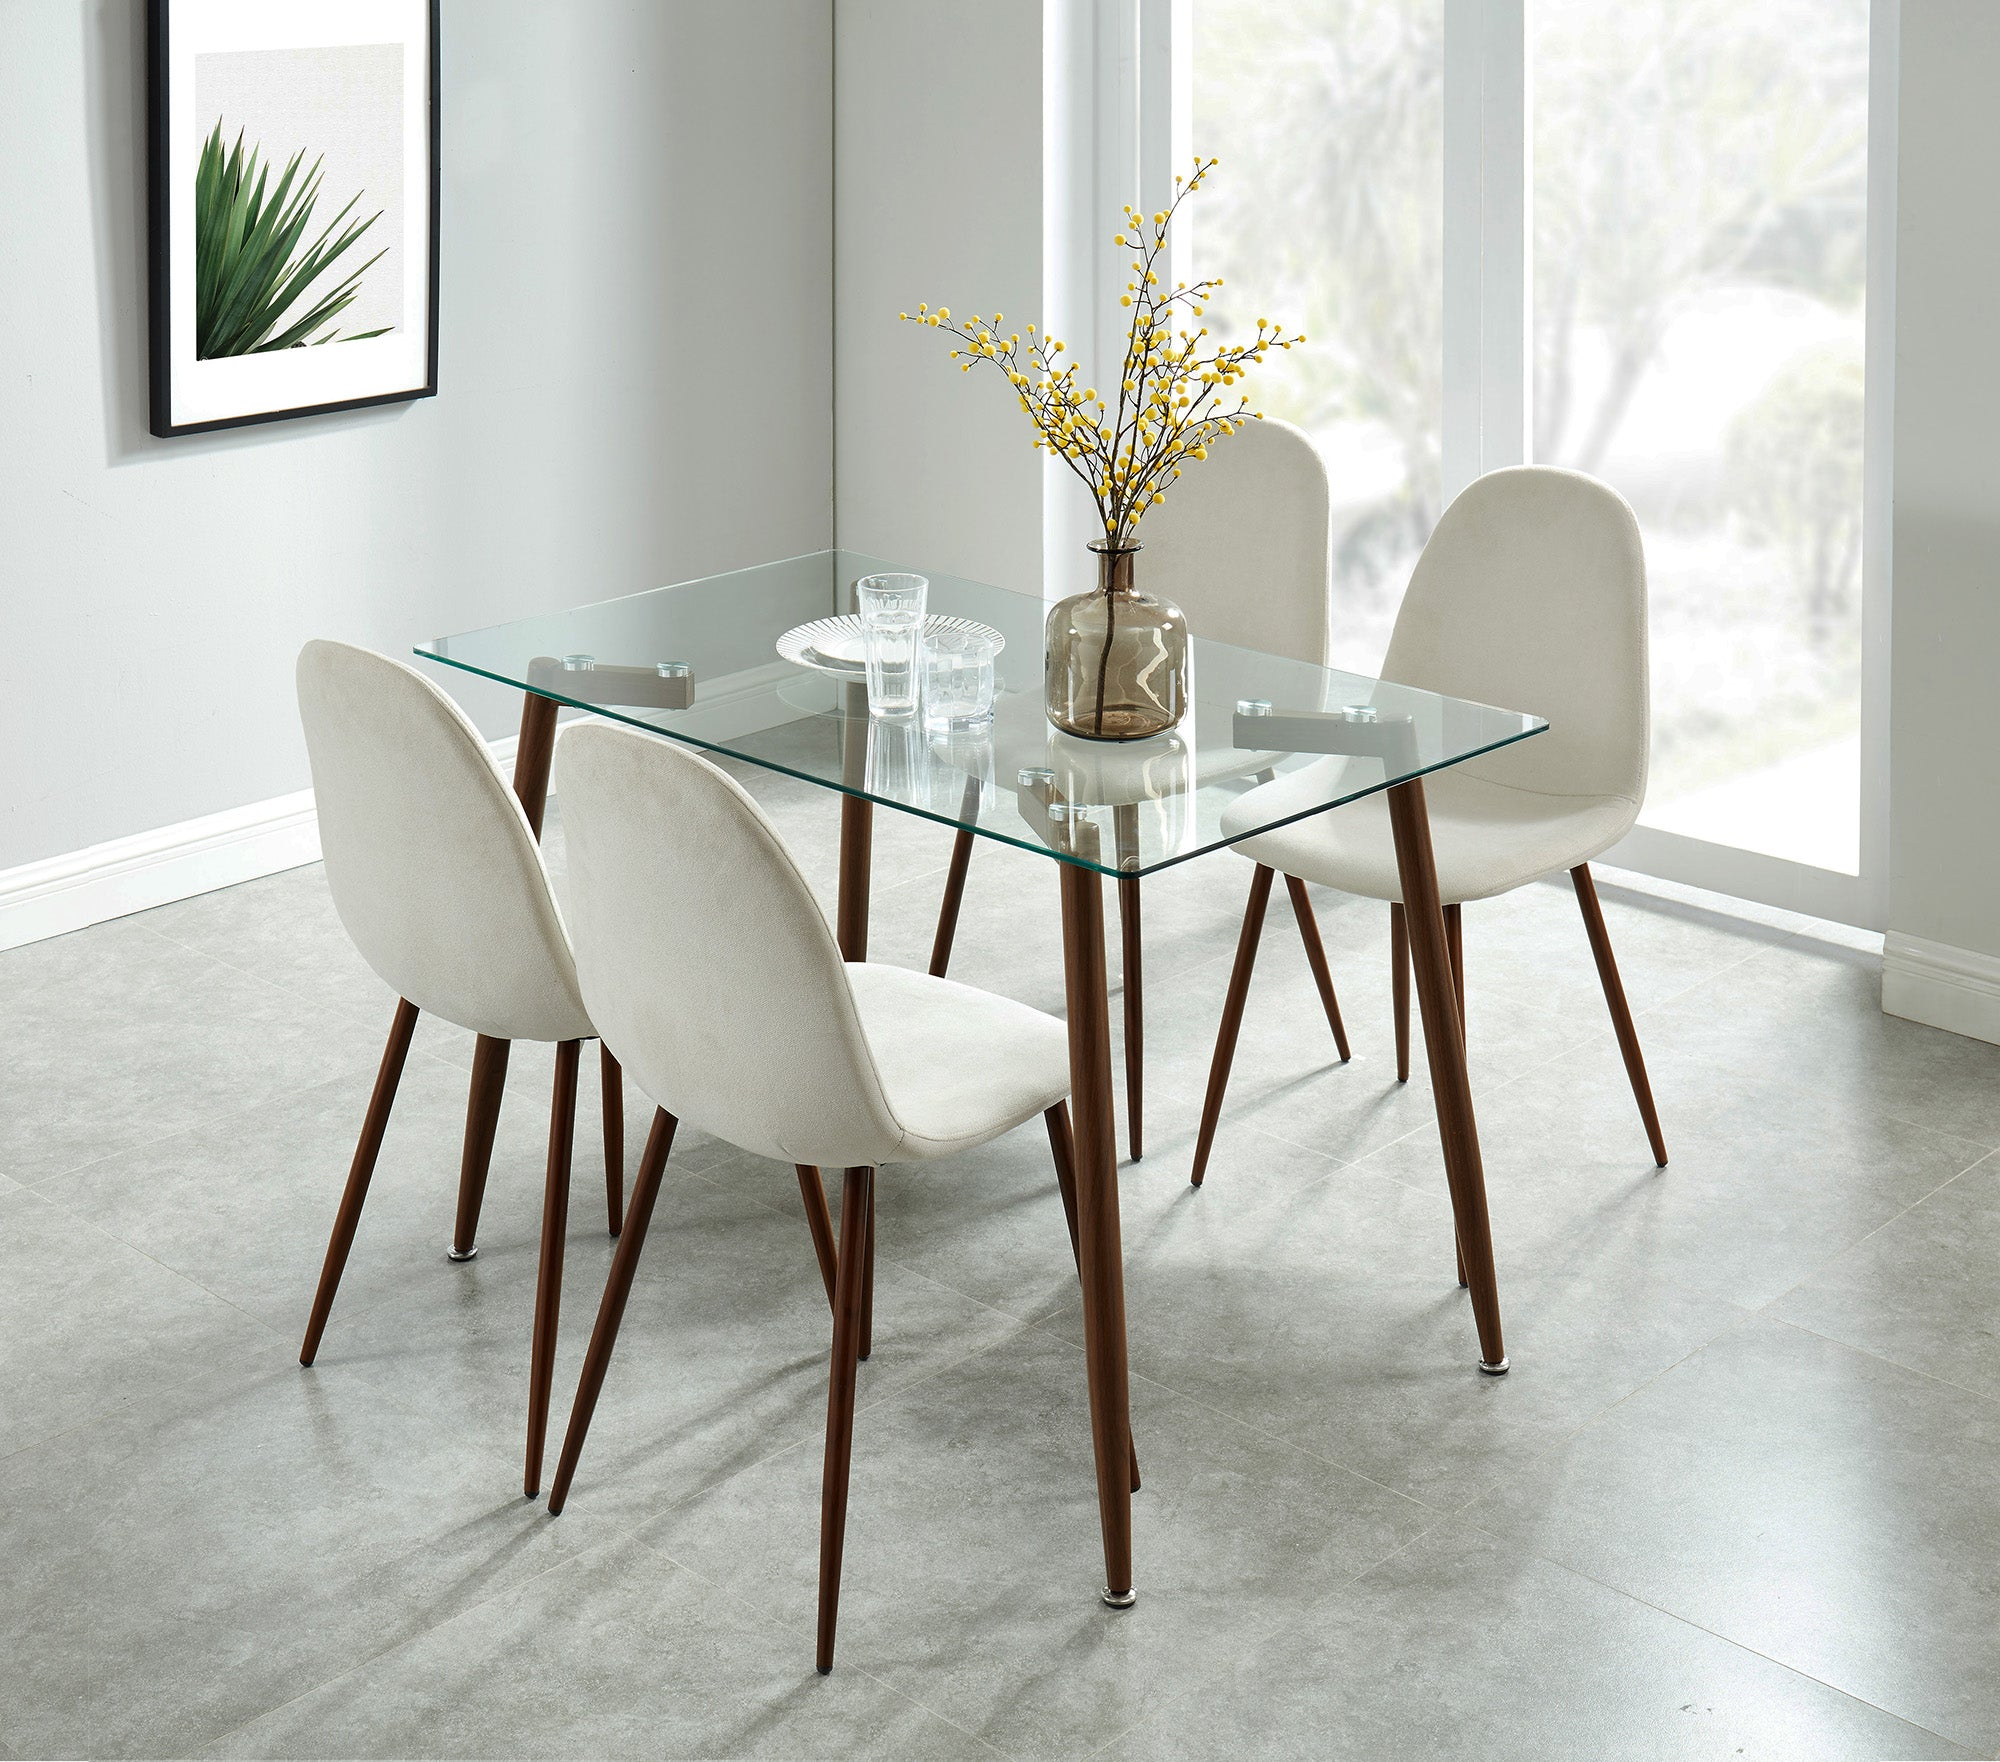 Todd/Lyna 5pc Dining Set, Walnut/Beige